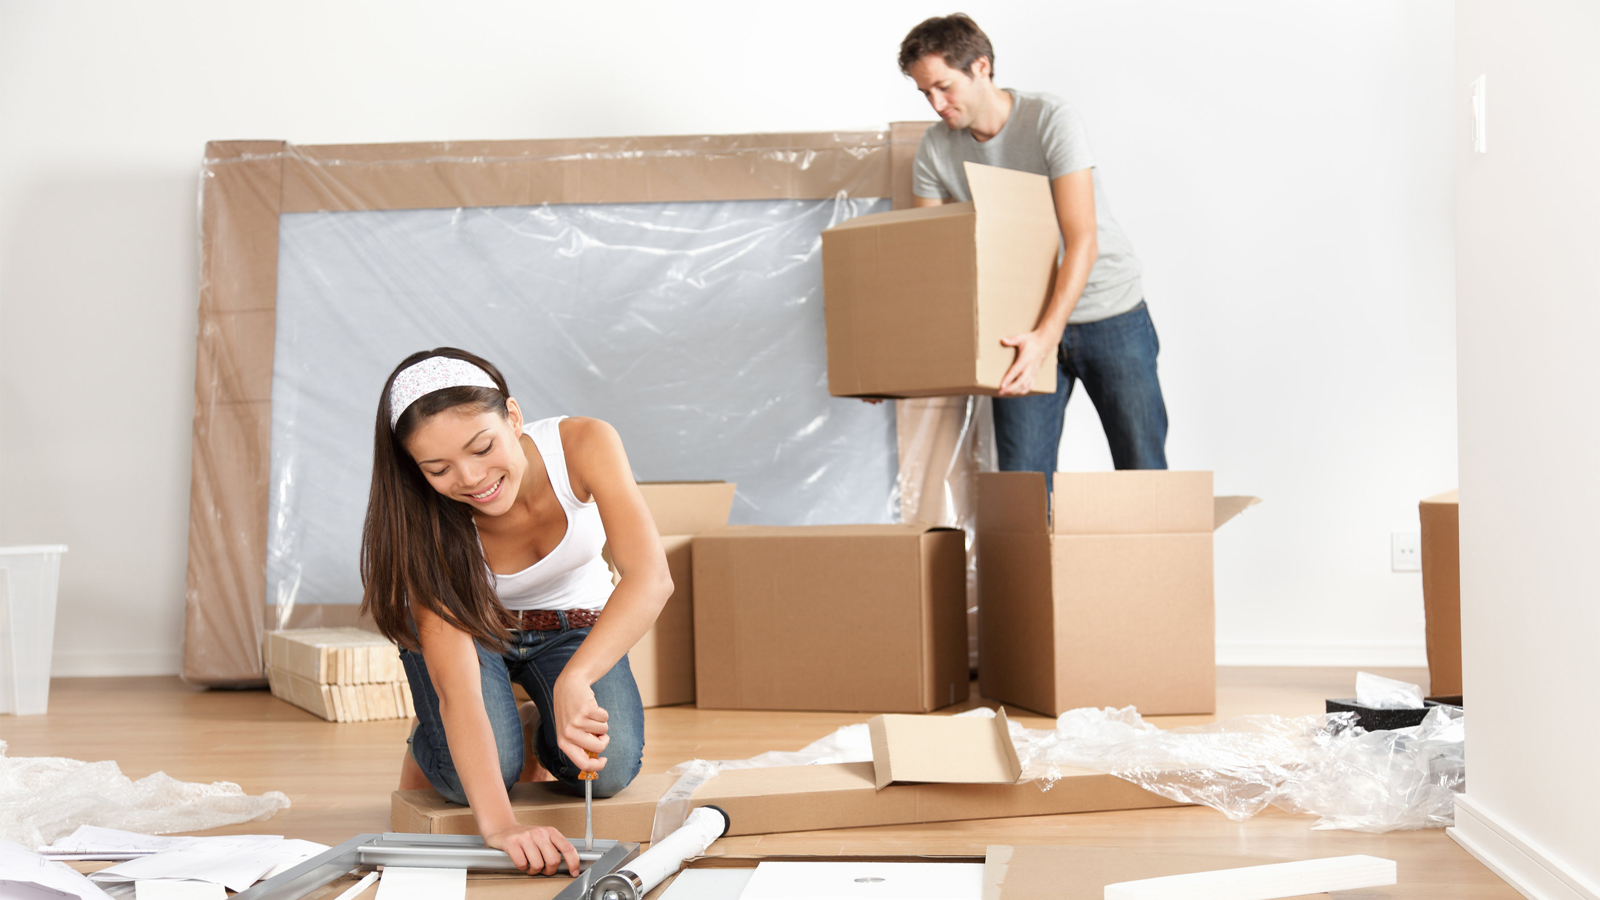 Packers and movers in Beawar, packers and movers in kishangargh, packers and movers in Ajmer